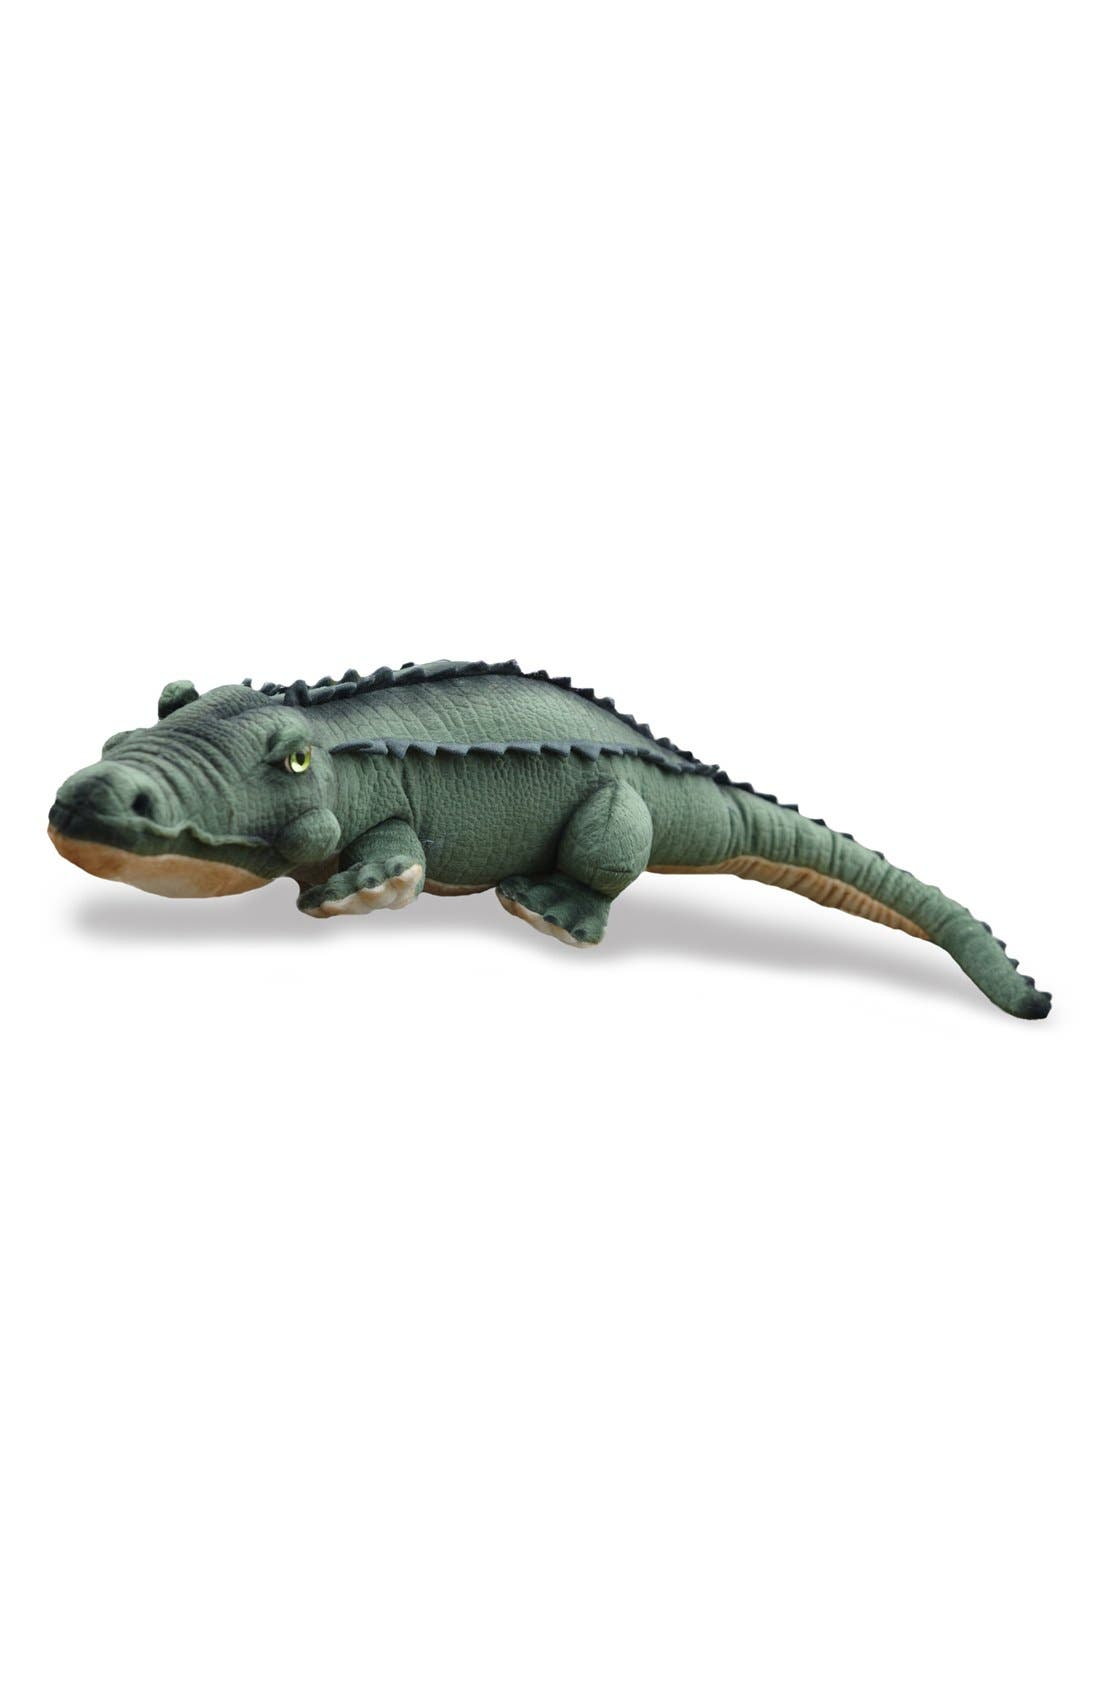 'Alligator' Stuffed Animal,                         Main,                         color, Green